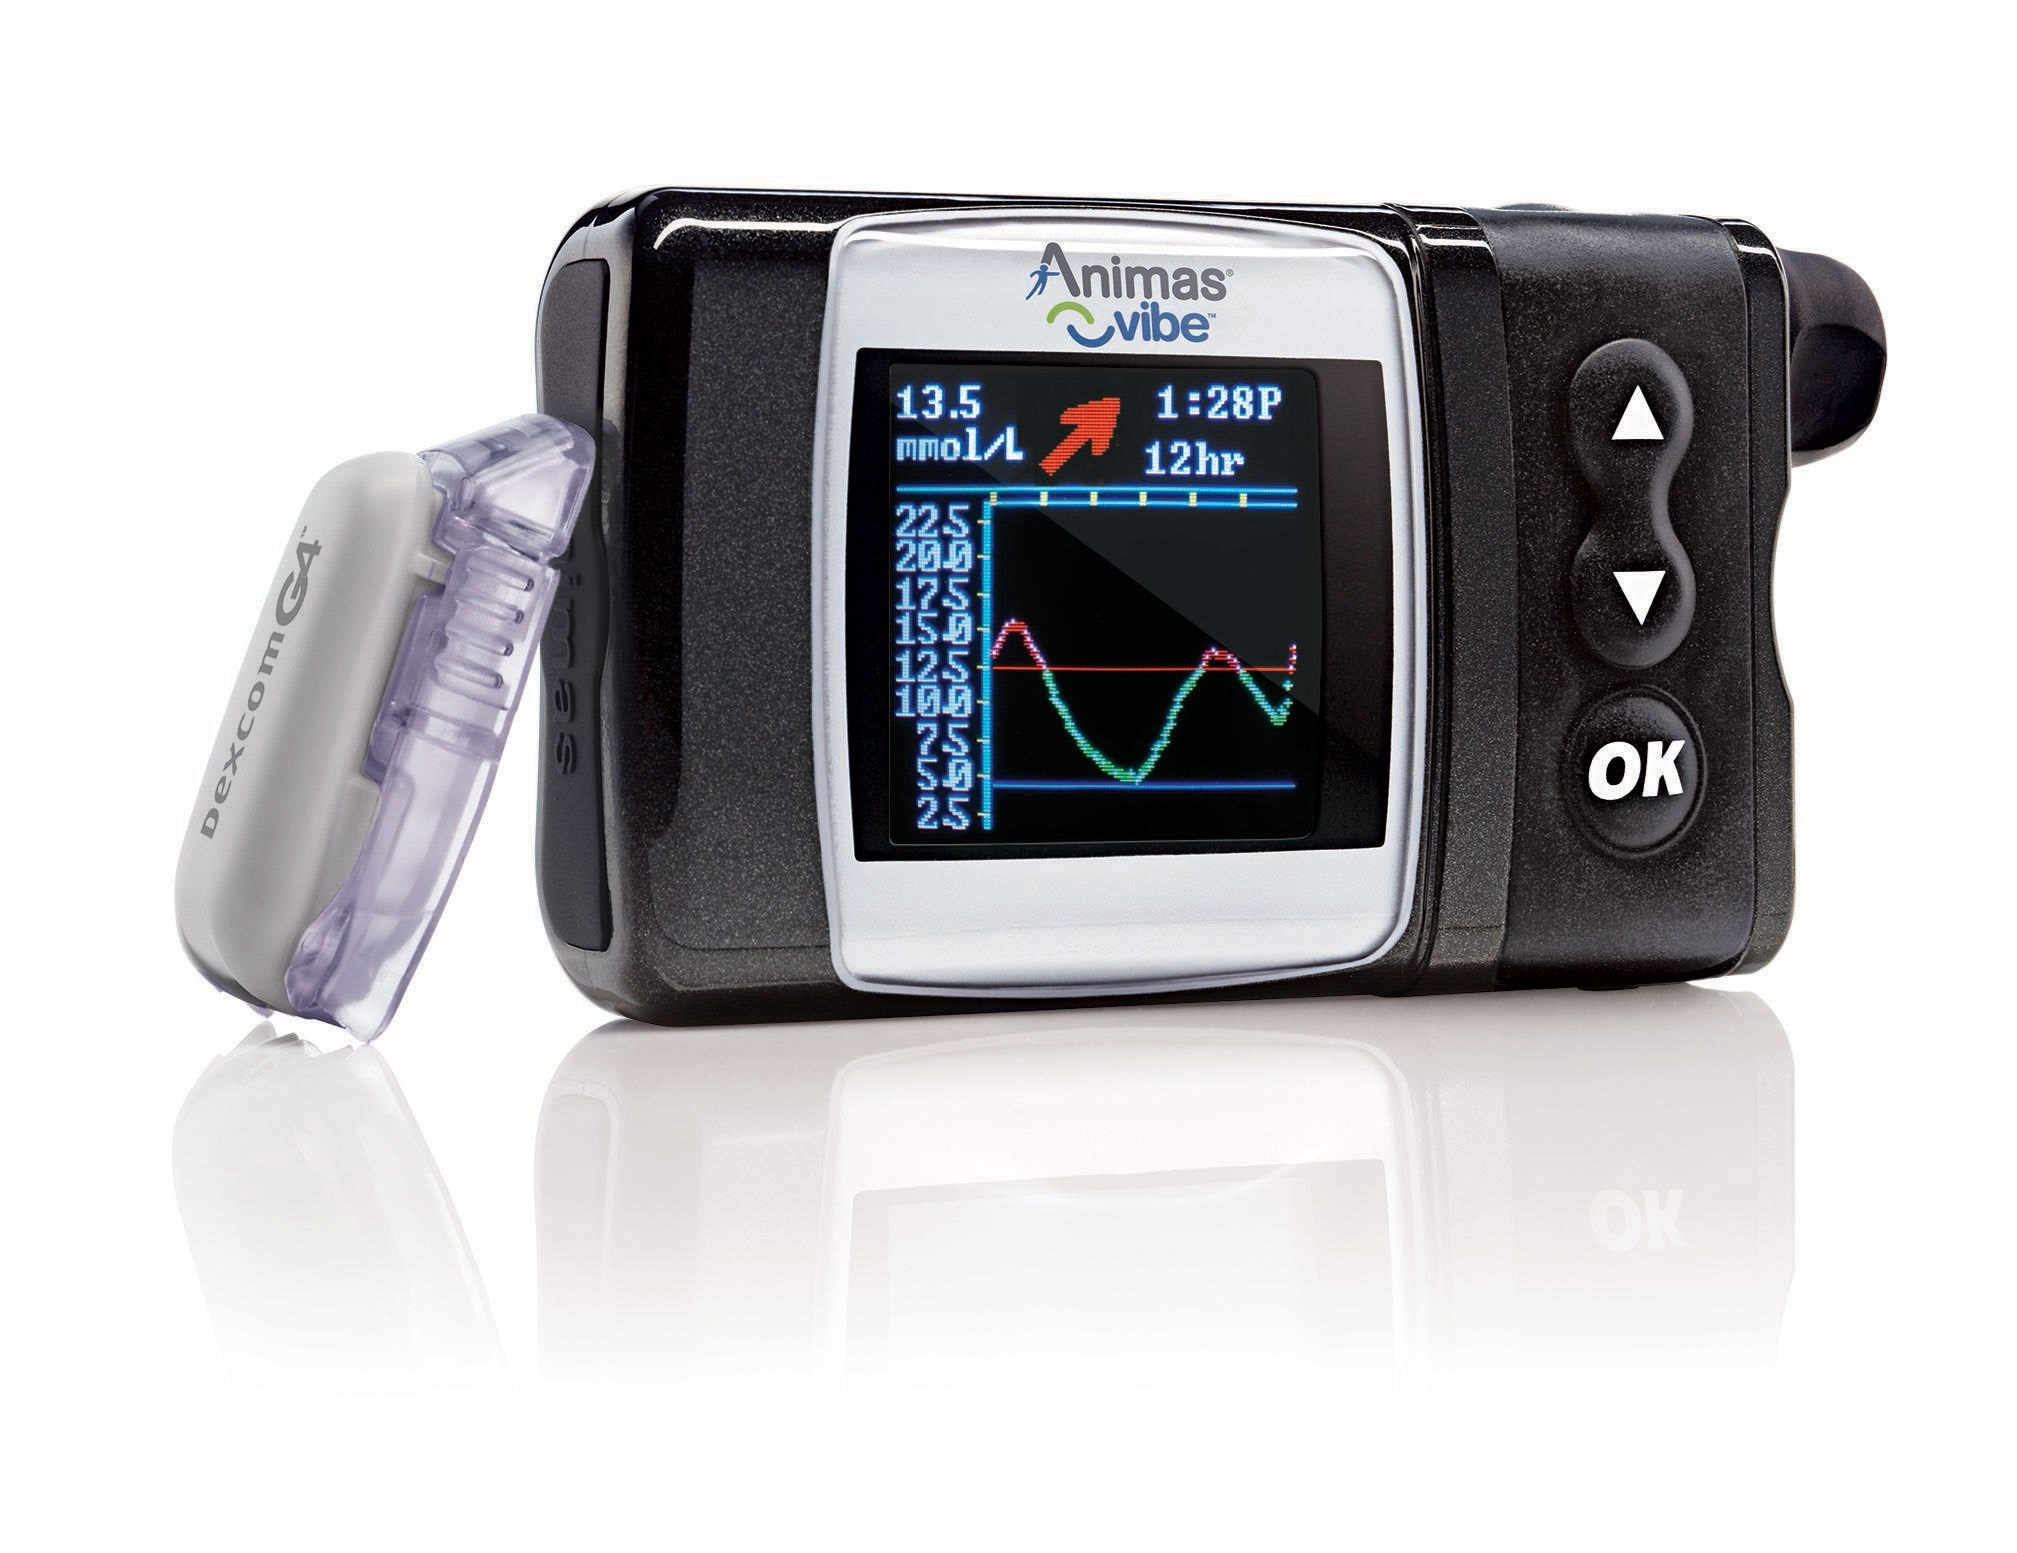 Insulin pump approval sets up showdown with Medtronic